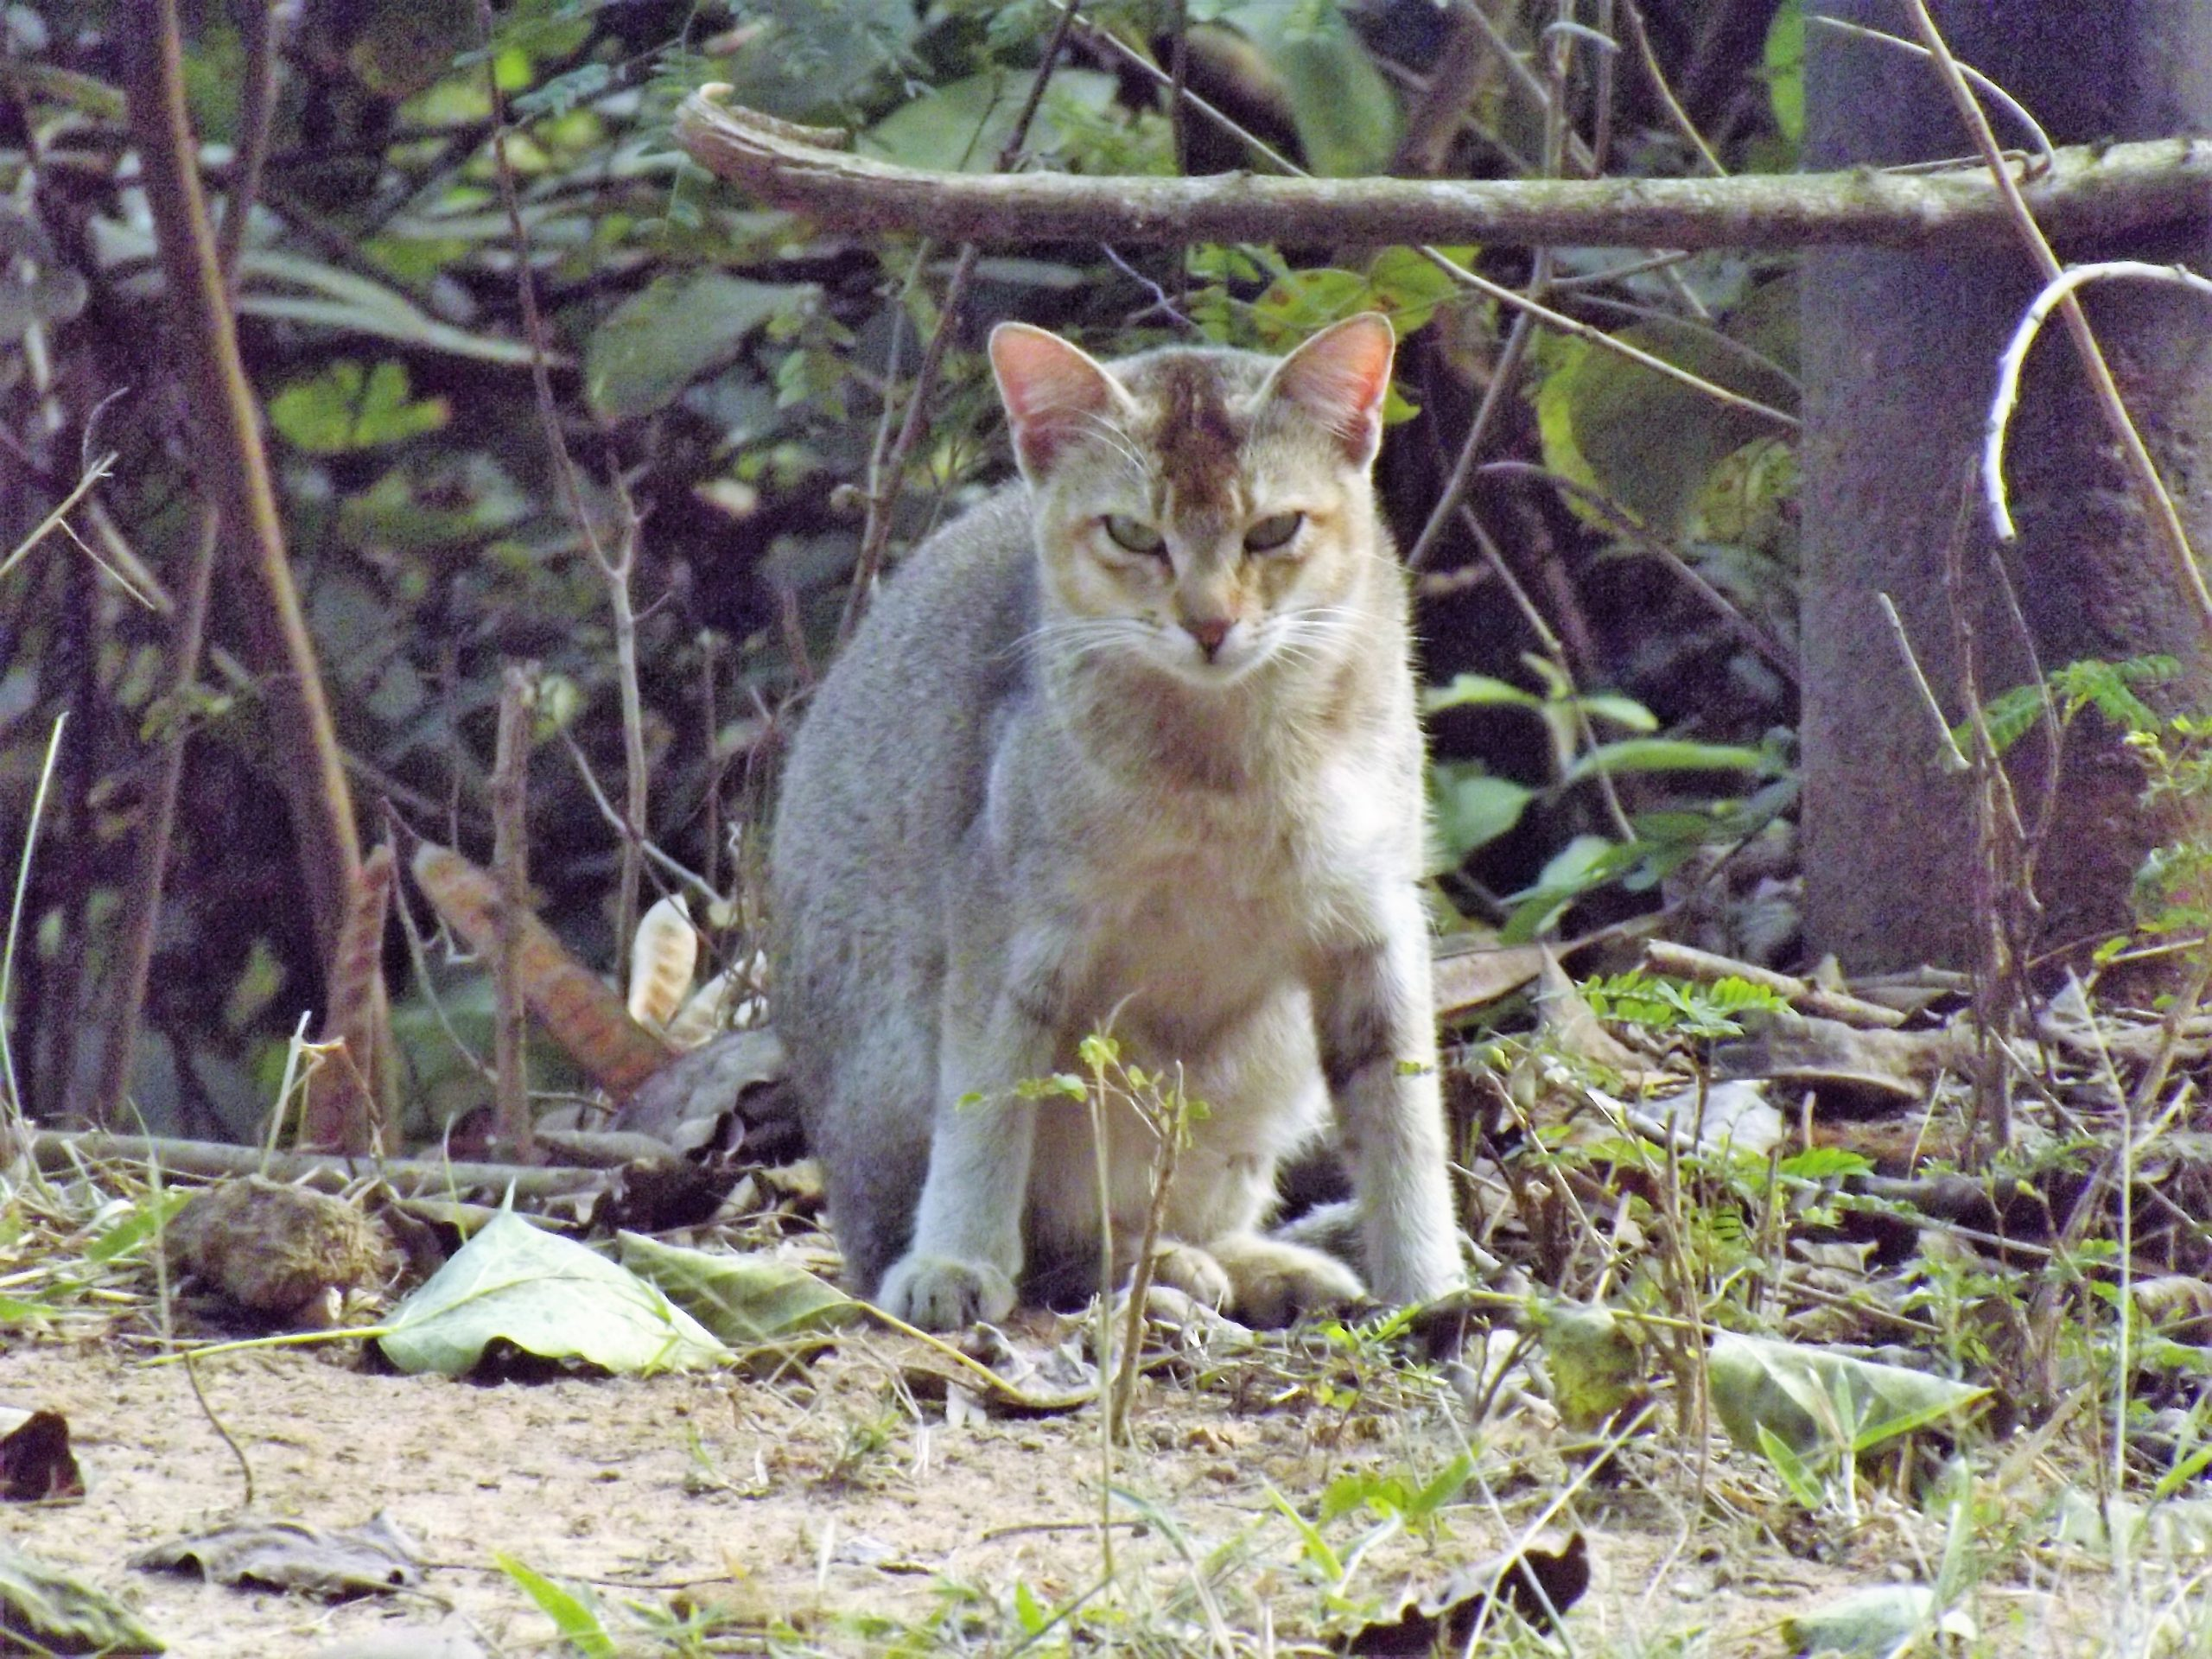 Angry cat in forest